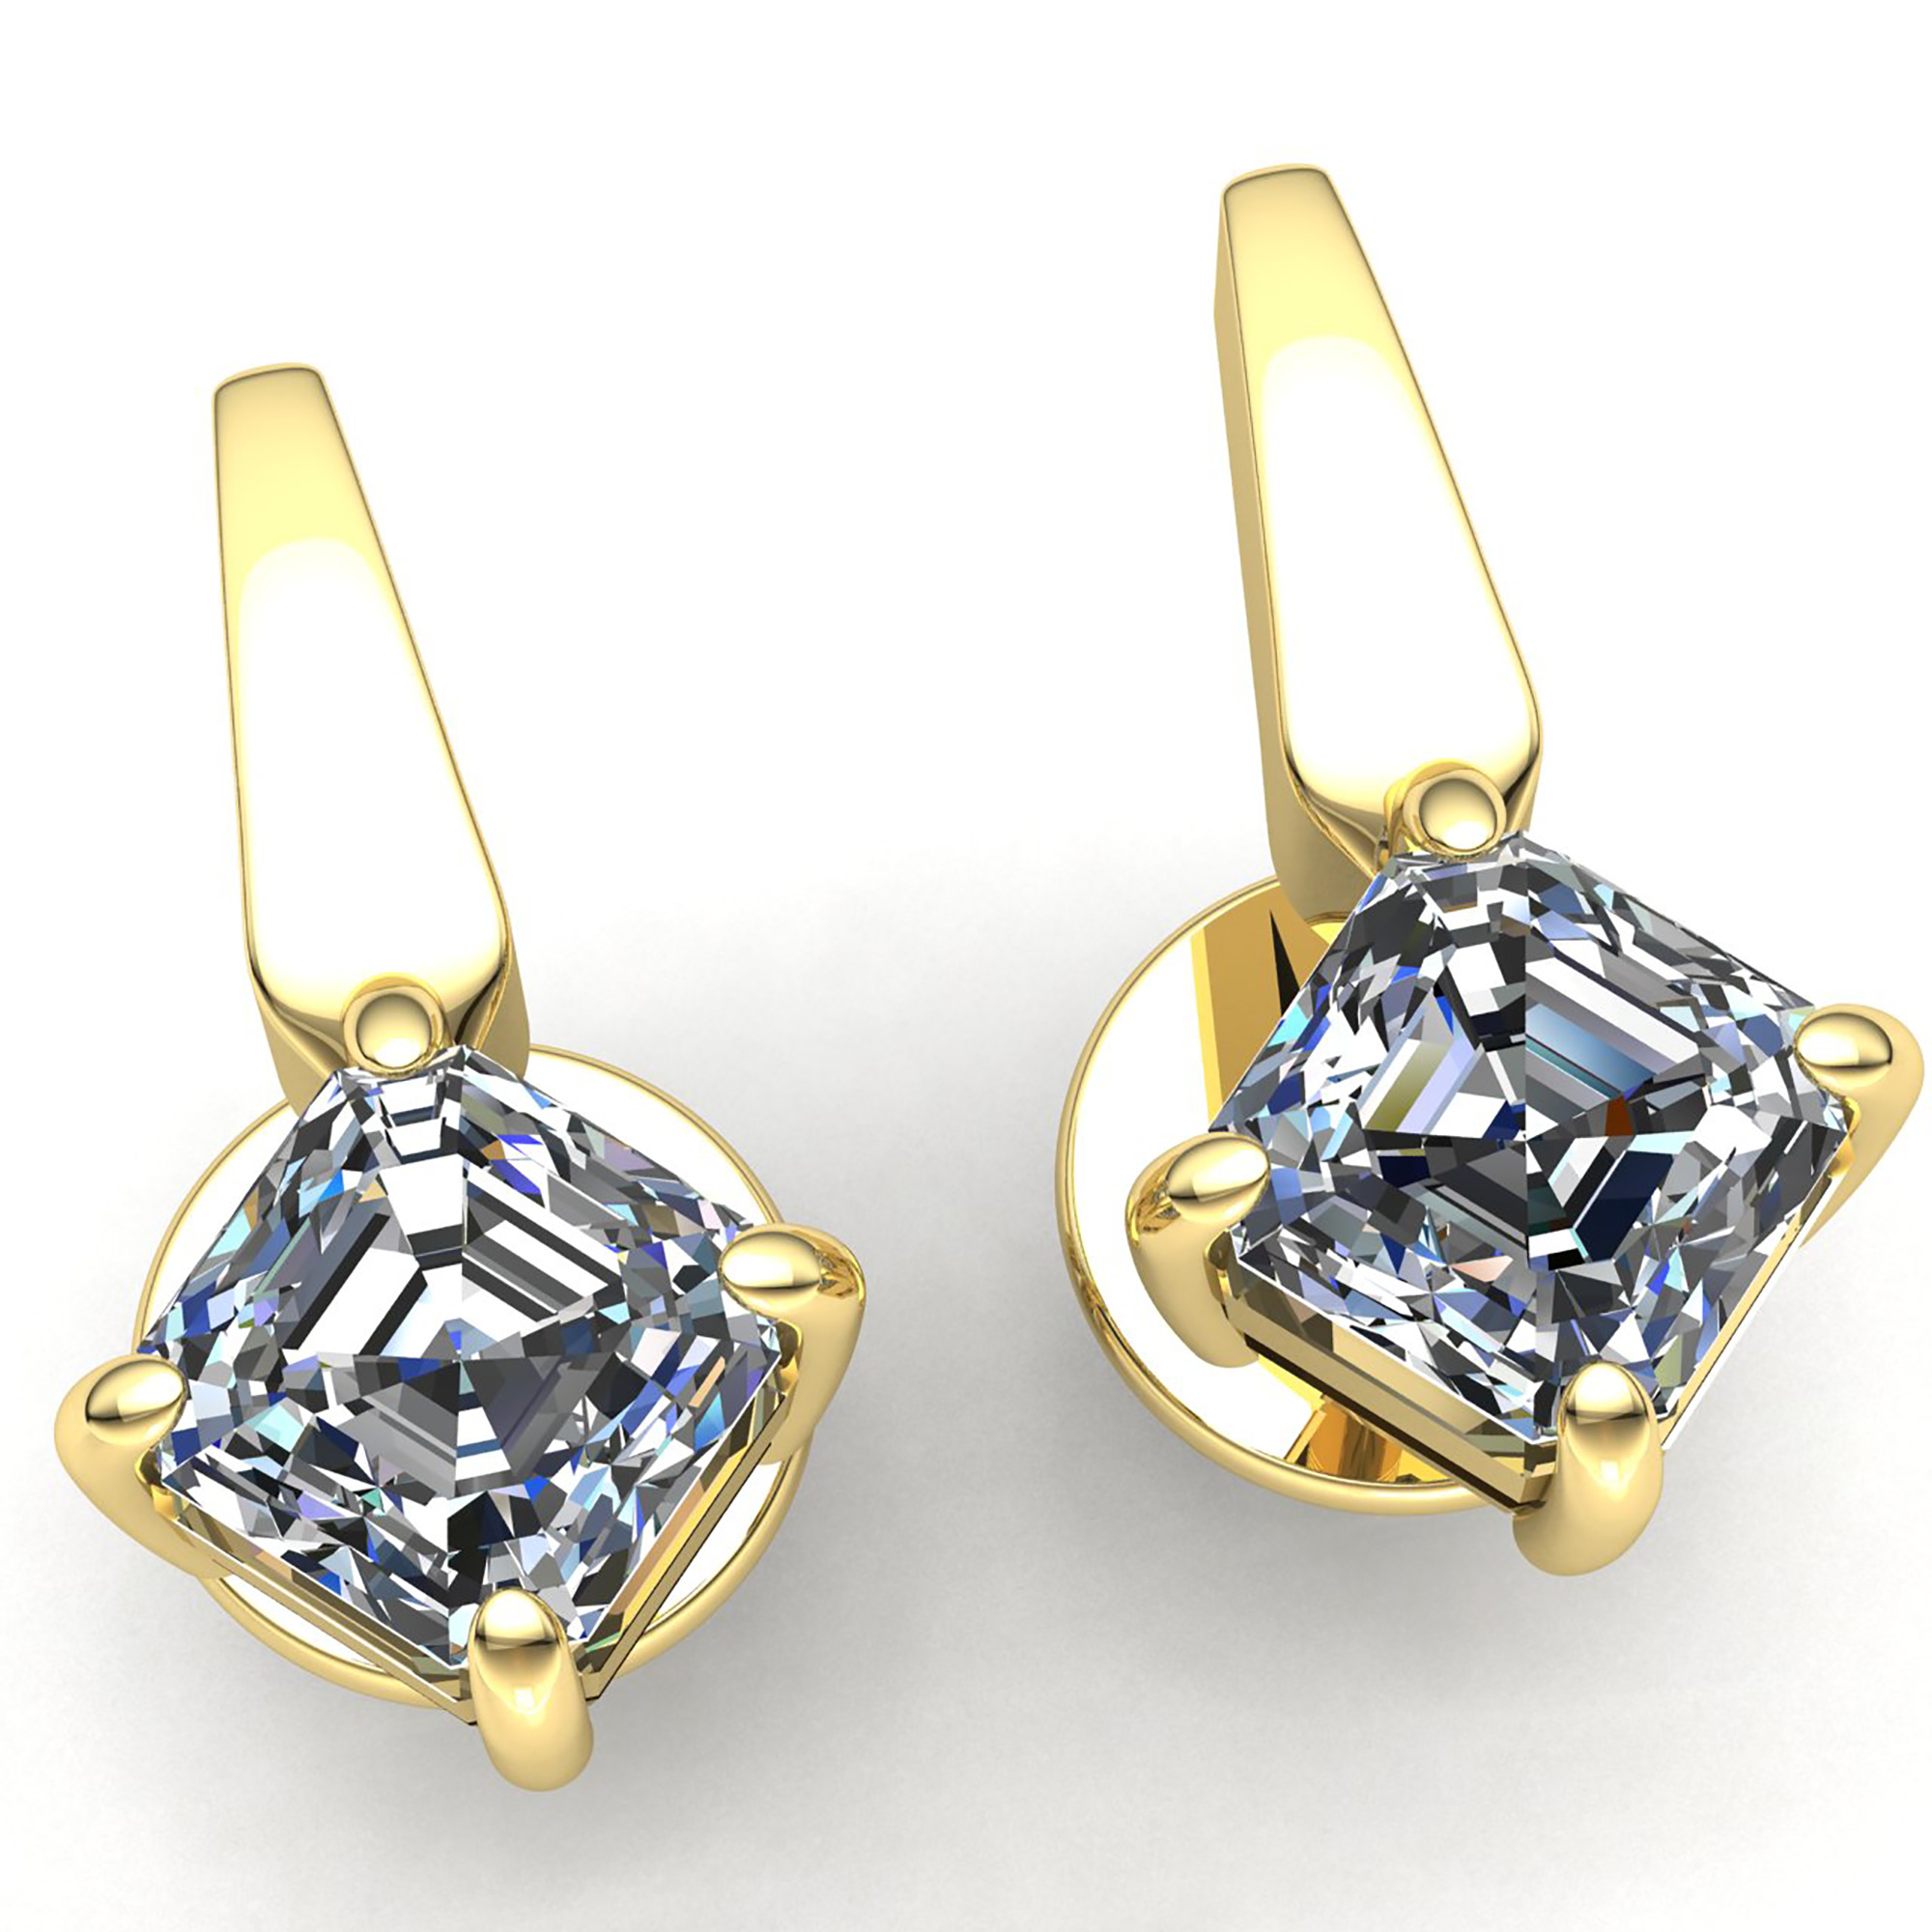 earrings zirconia by silver sterling kokomo solitaire jewellery created products zoom ornately diamondust gold set powered shopify swarovski with